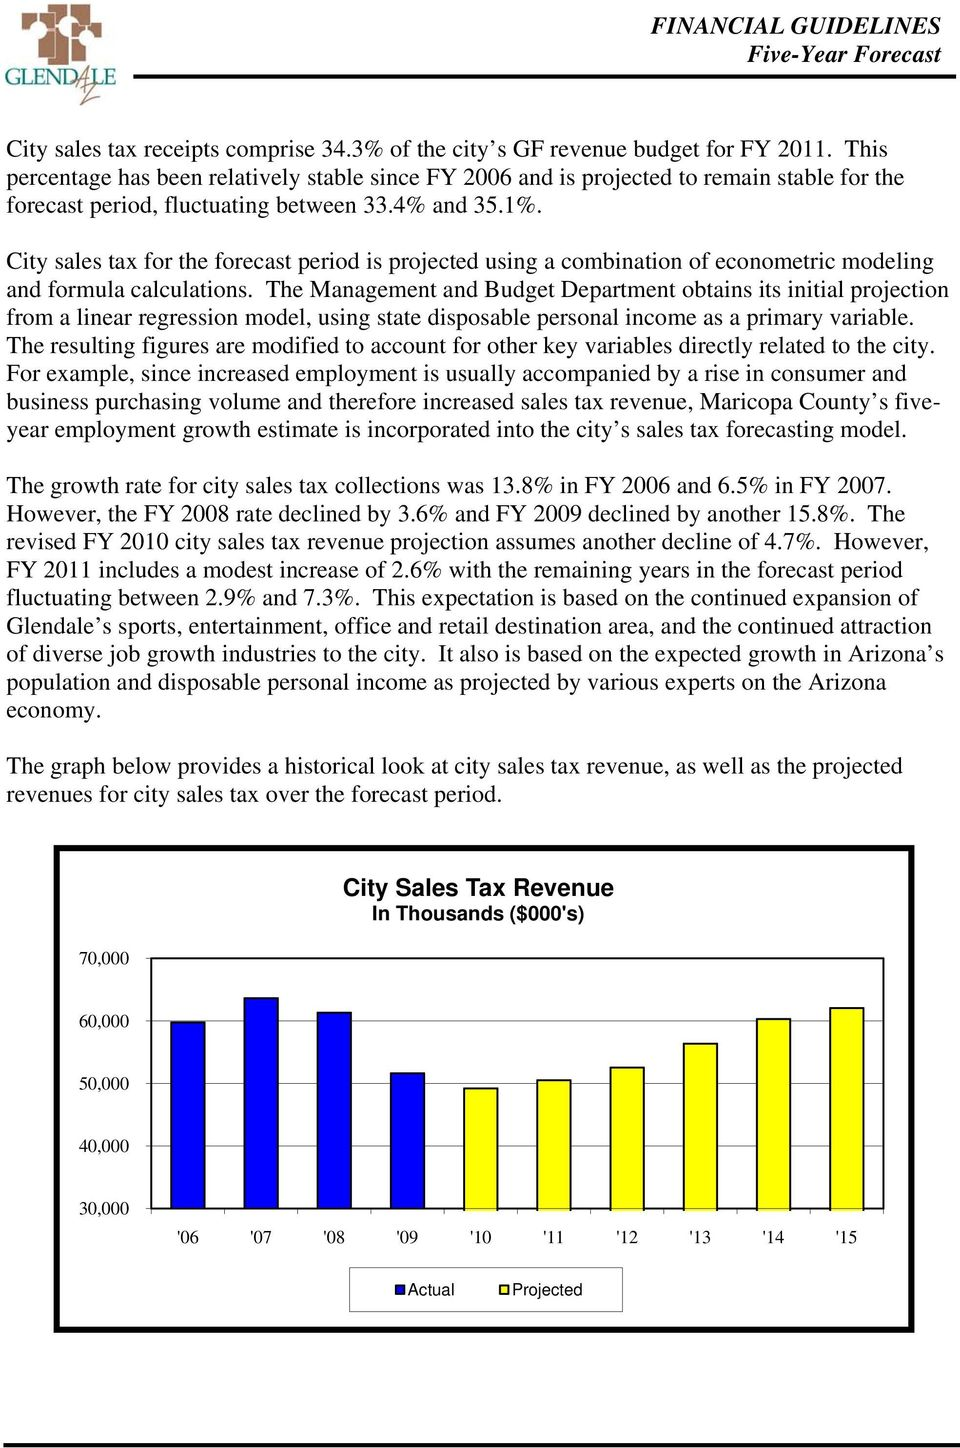 City sales tax for the forecast period is projected using a combination of econometric modeling and formula calculations.